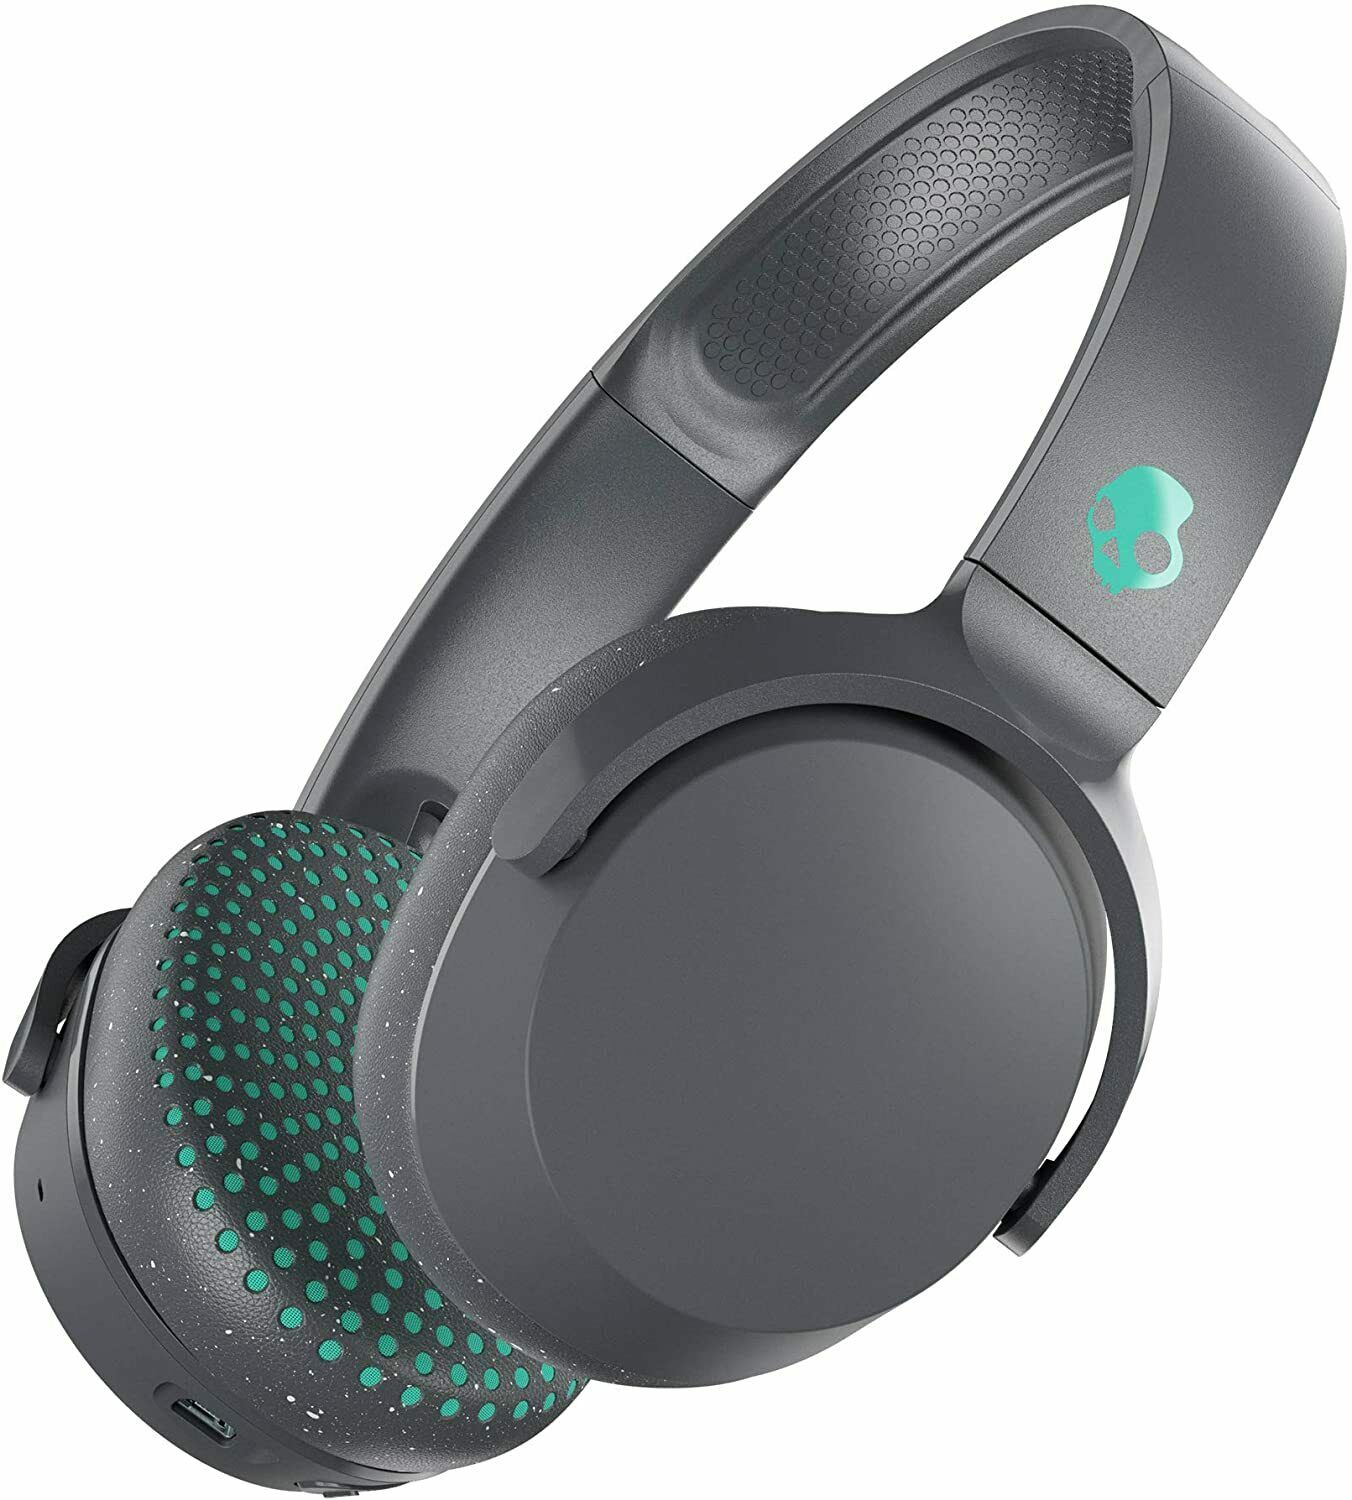 Skullcandy RIFF Cuffie Wireless Ricarica Rapida Bluetooth Grigio / Miami